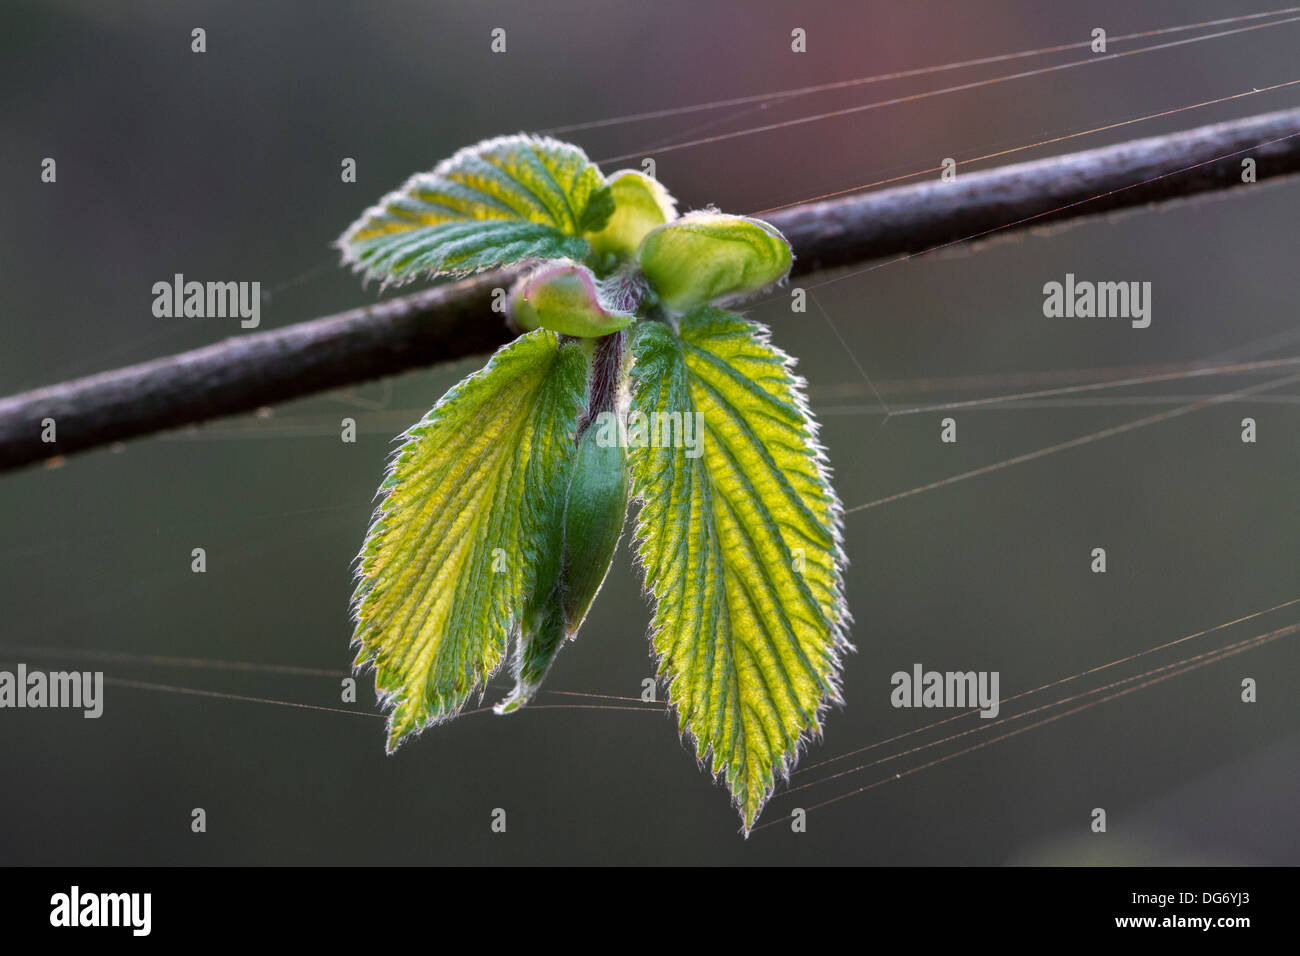 Common hazel (Corylus avellana) branch with leaves emerging in spring - Stock Image